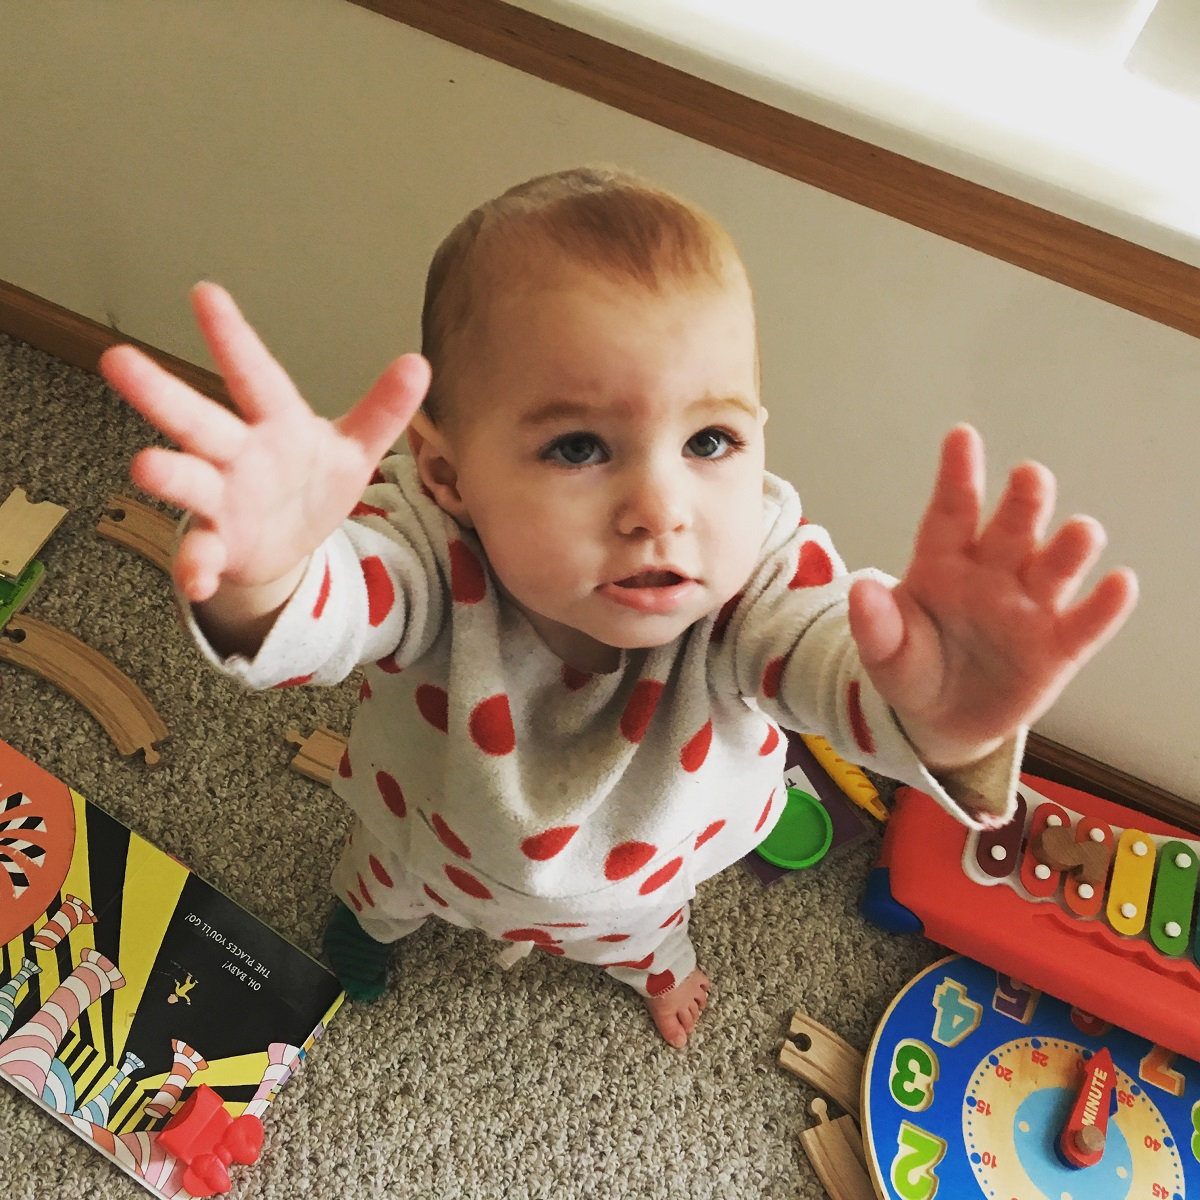 One year old wants up